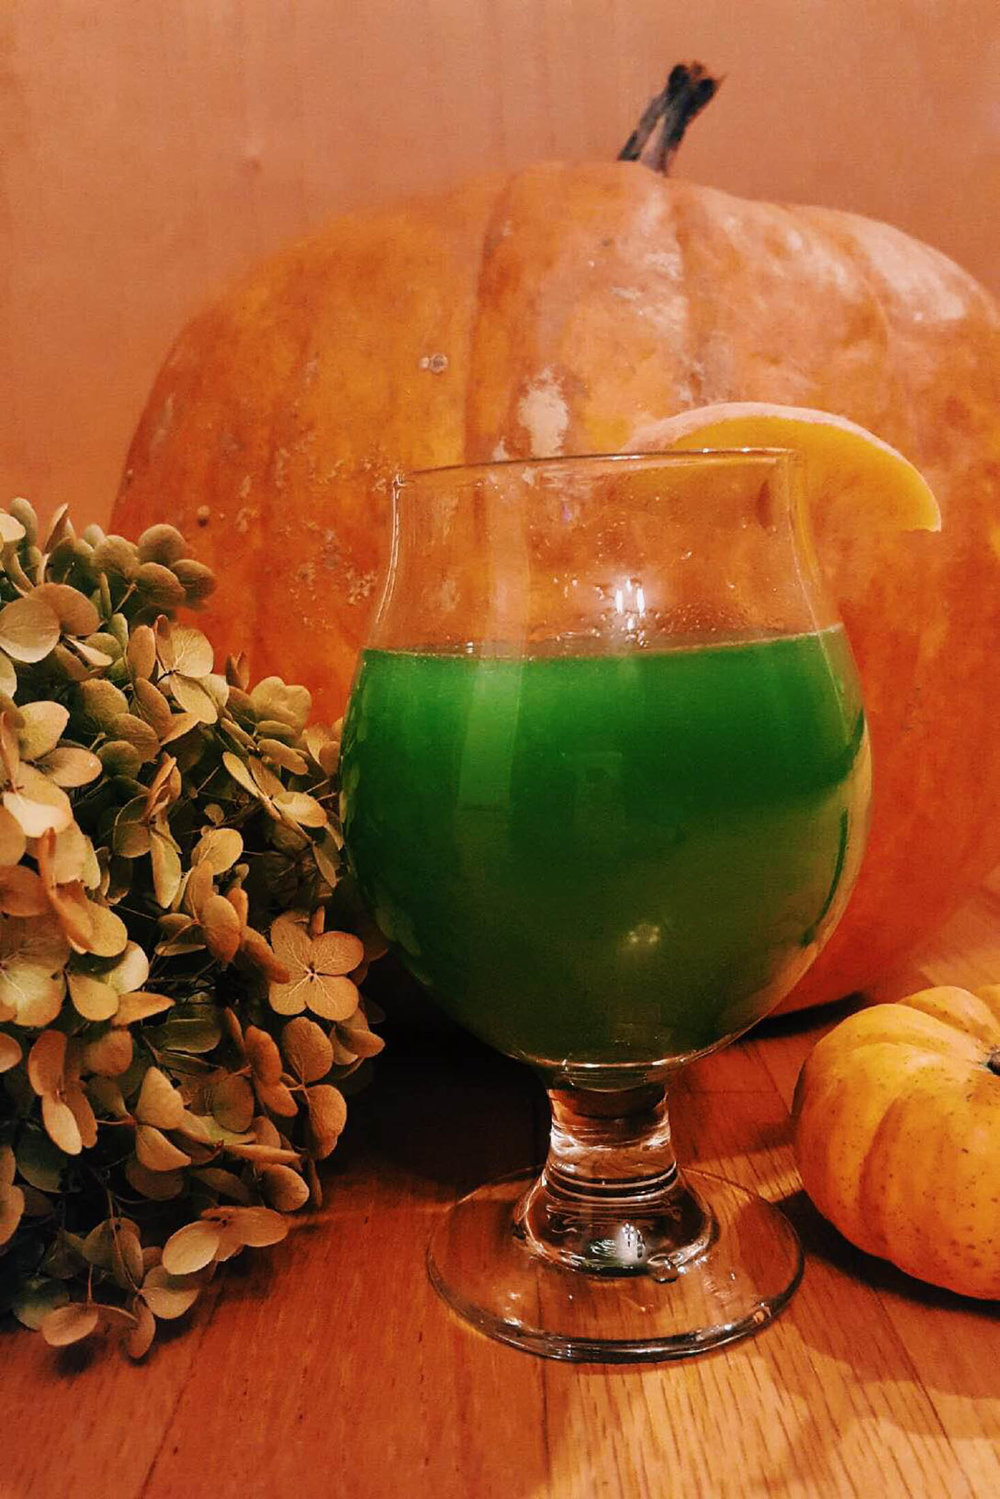 This week's cocktail will help you celebrate Halloween in style. (Megan Krementowski/The Daily Campus)